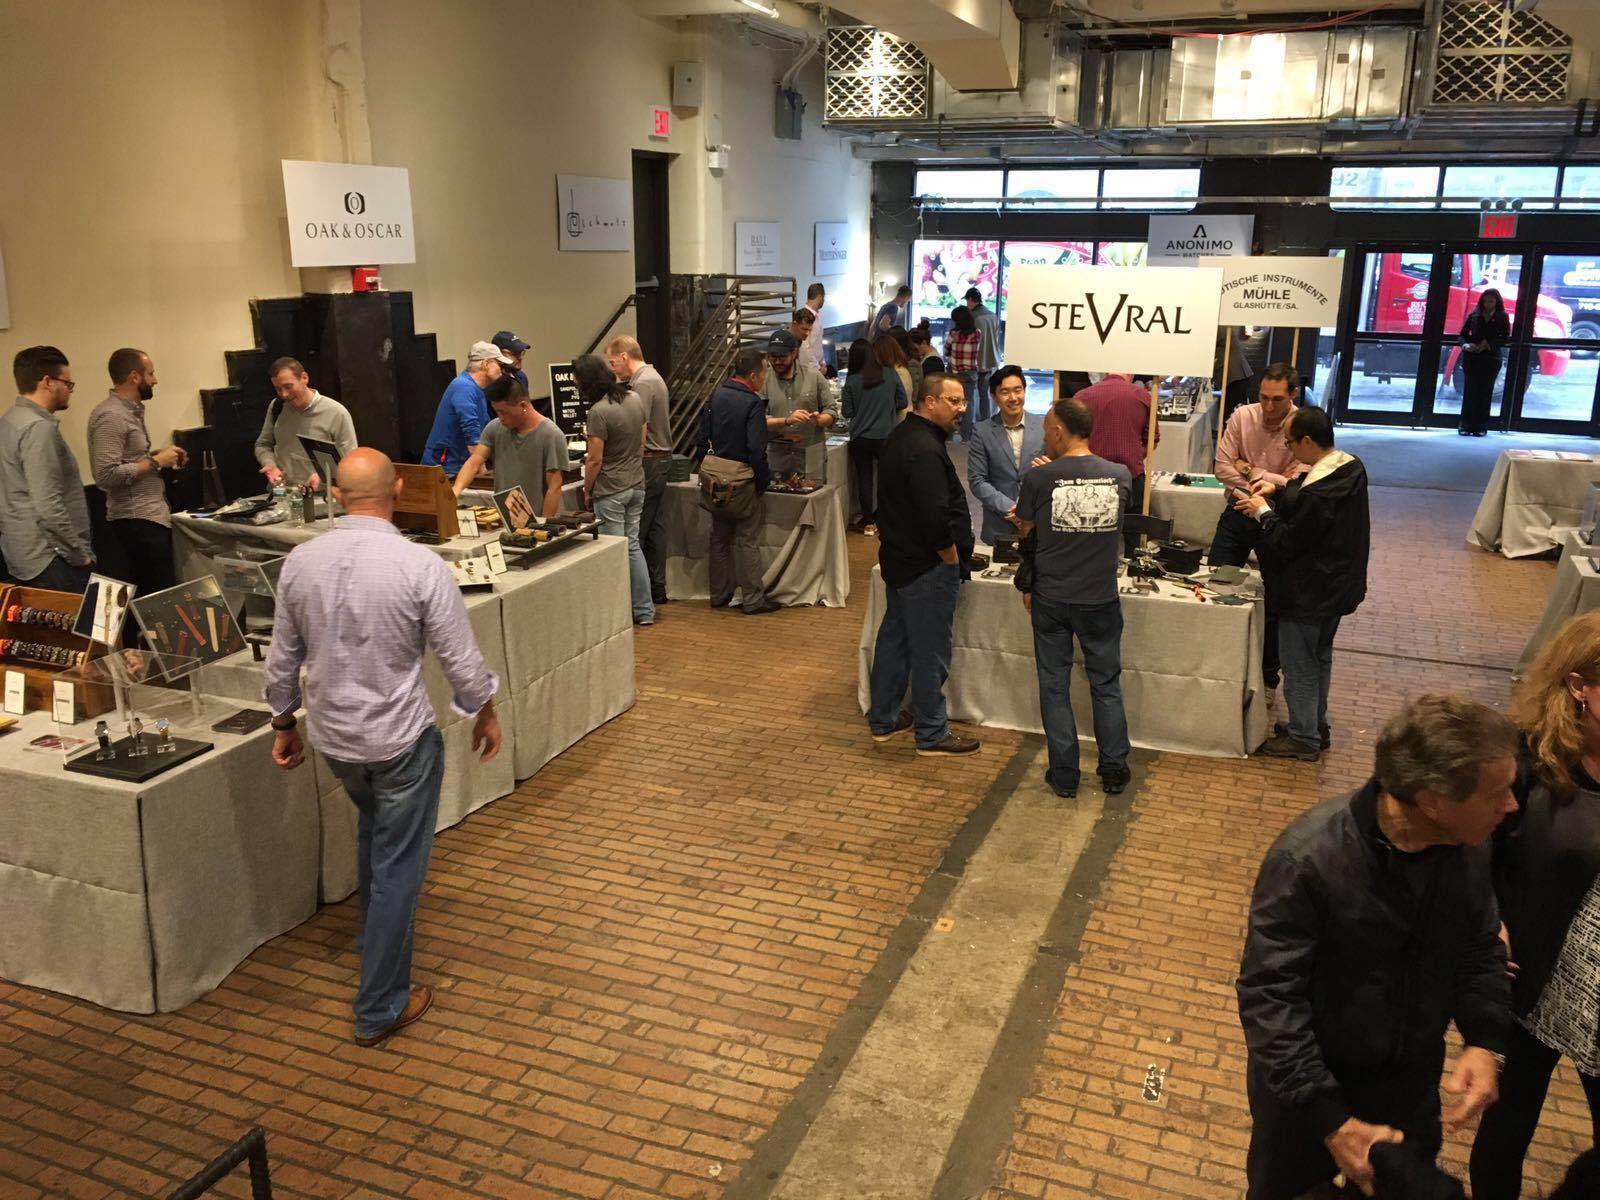 Wind Up NYC – Free event with affordable watches